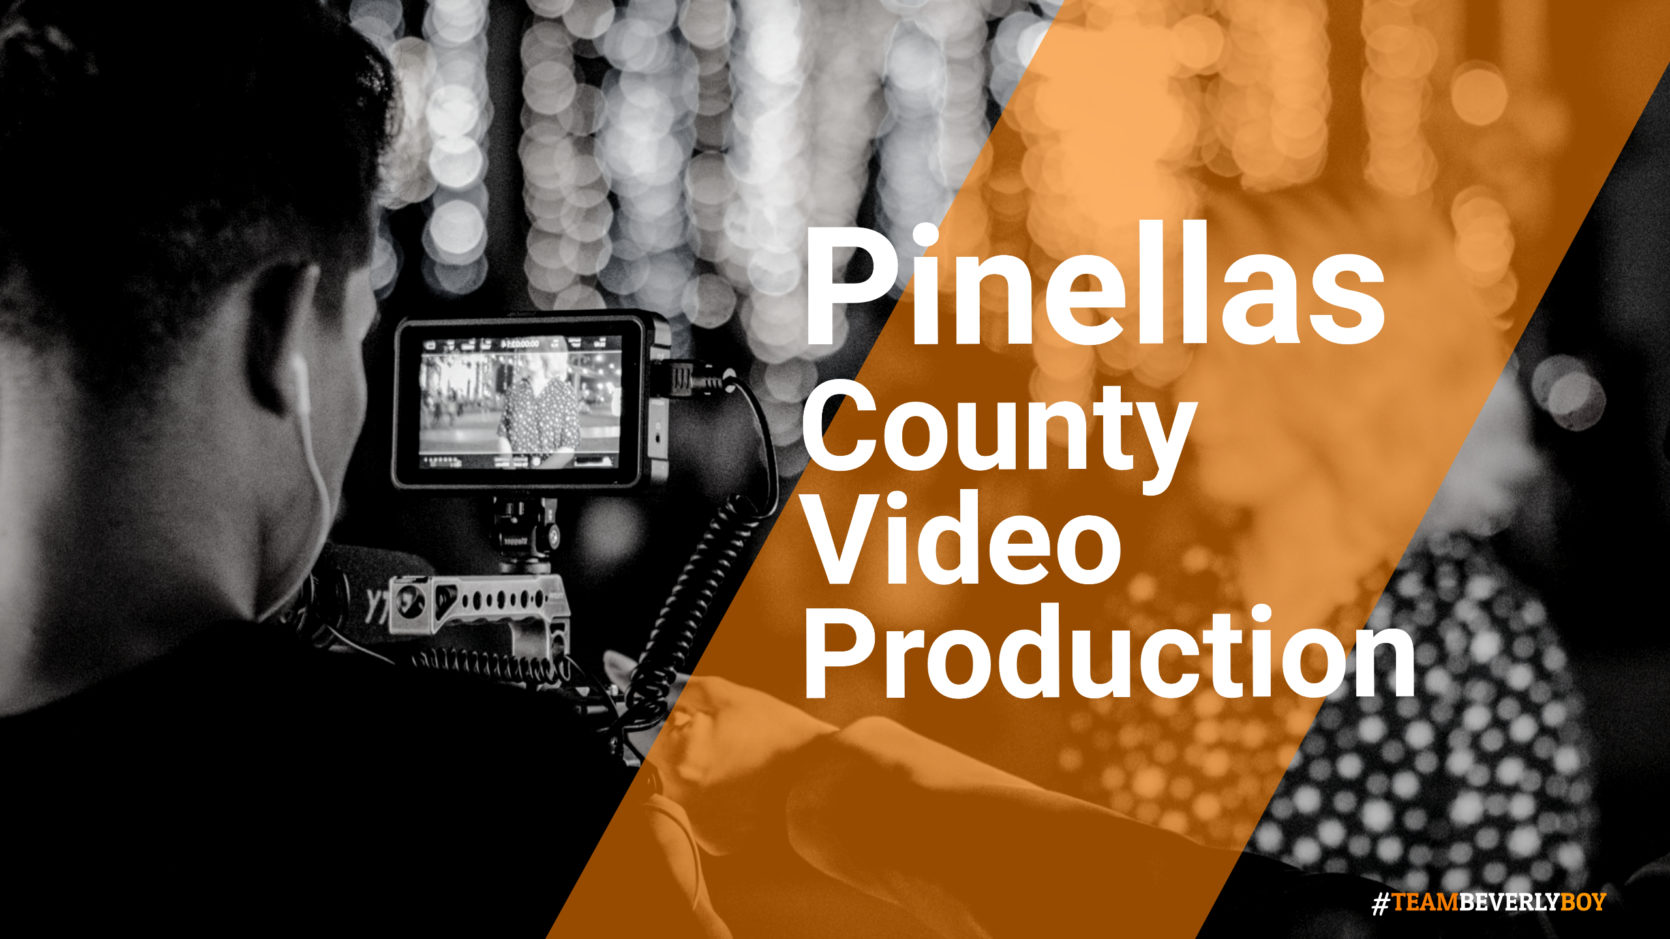 Pinellas county video production